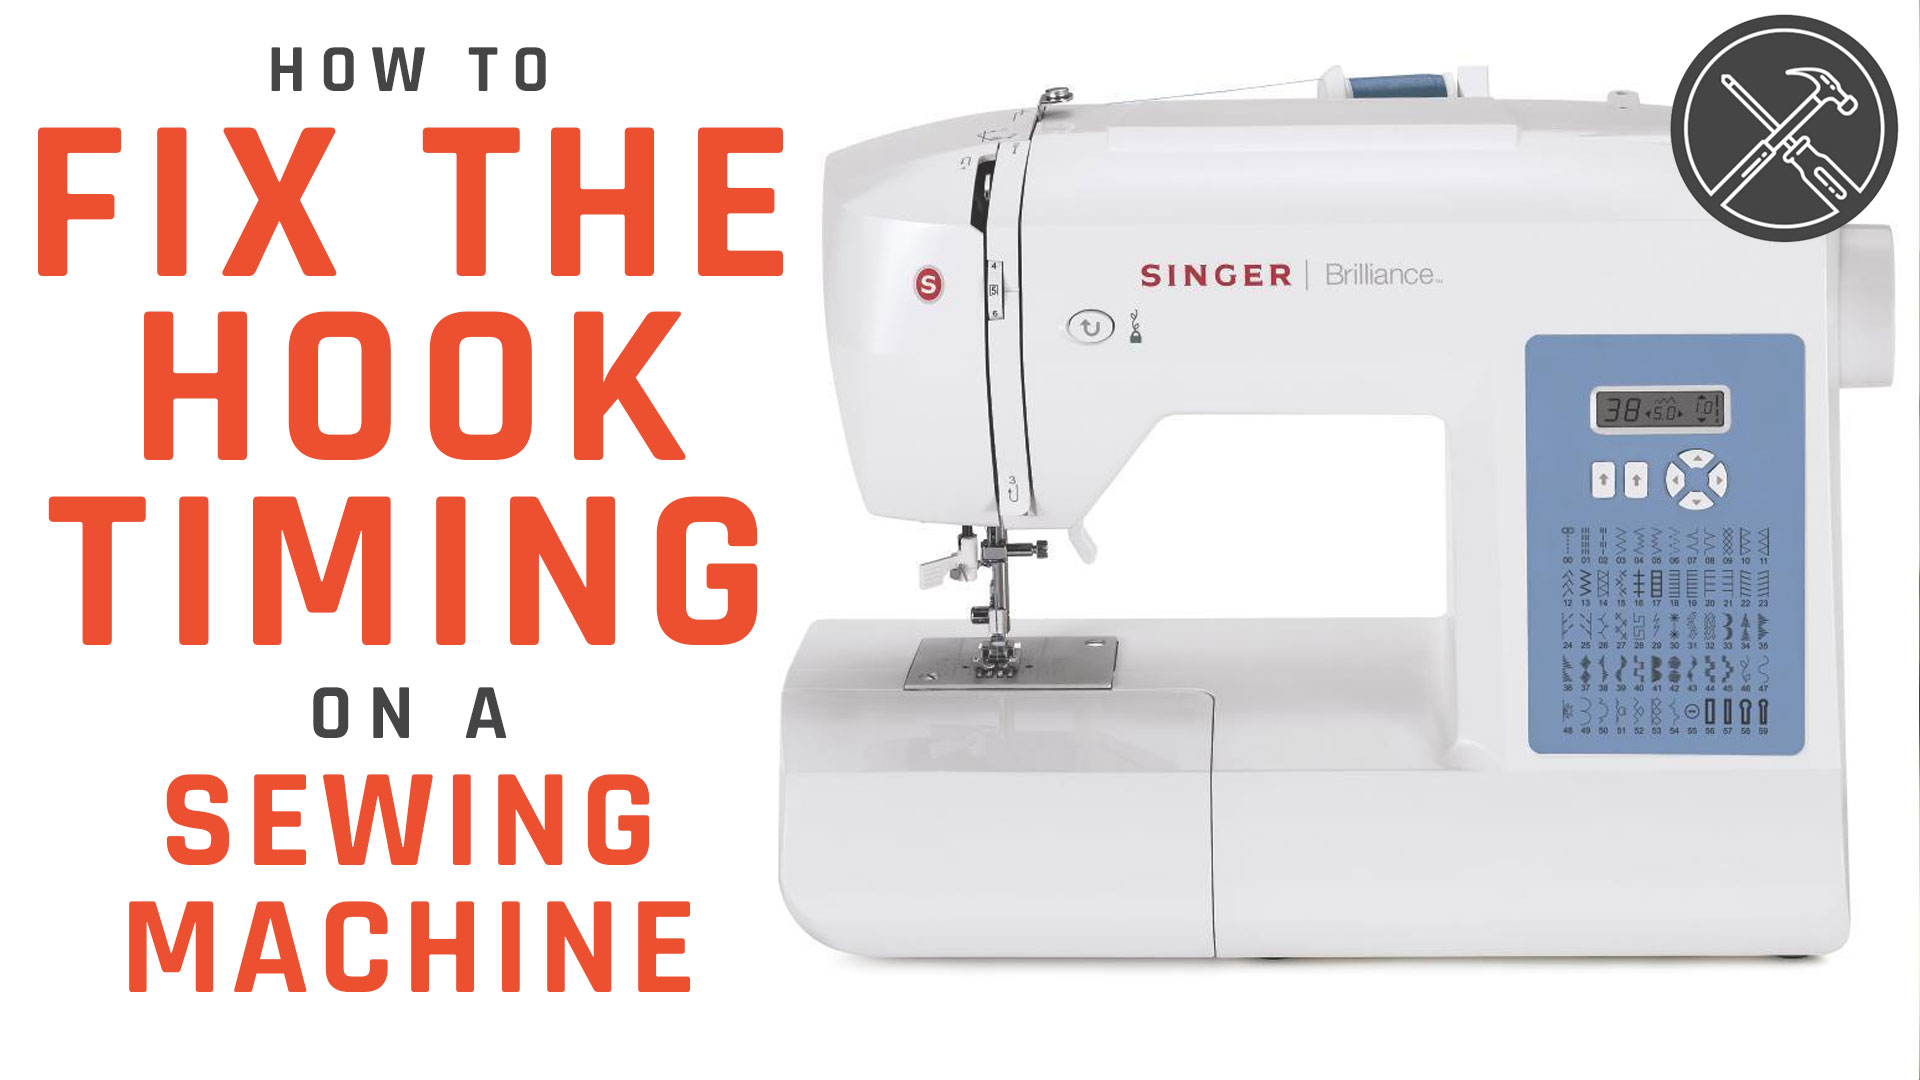 How to Fix the Hook Timing on a Sewing Machine